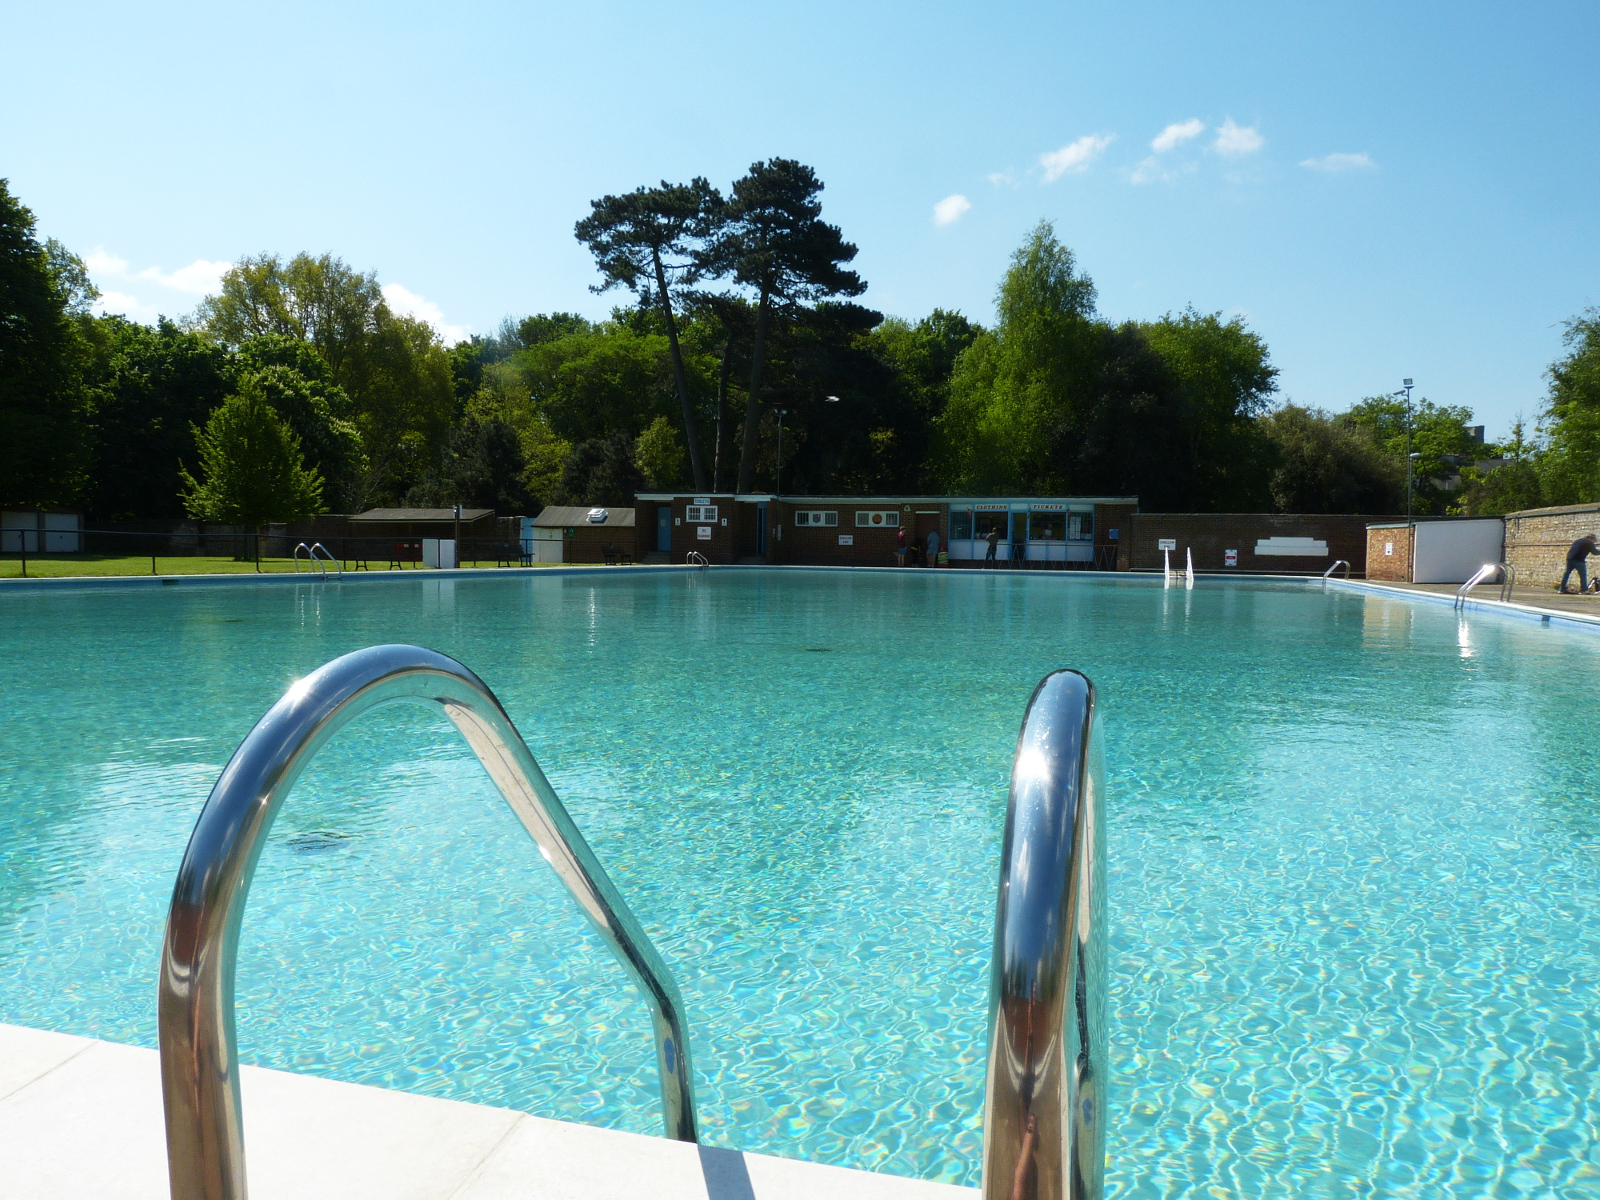 Pells pool wikipedia - How far is 50 lengths of a swimming pool ...